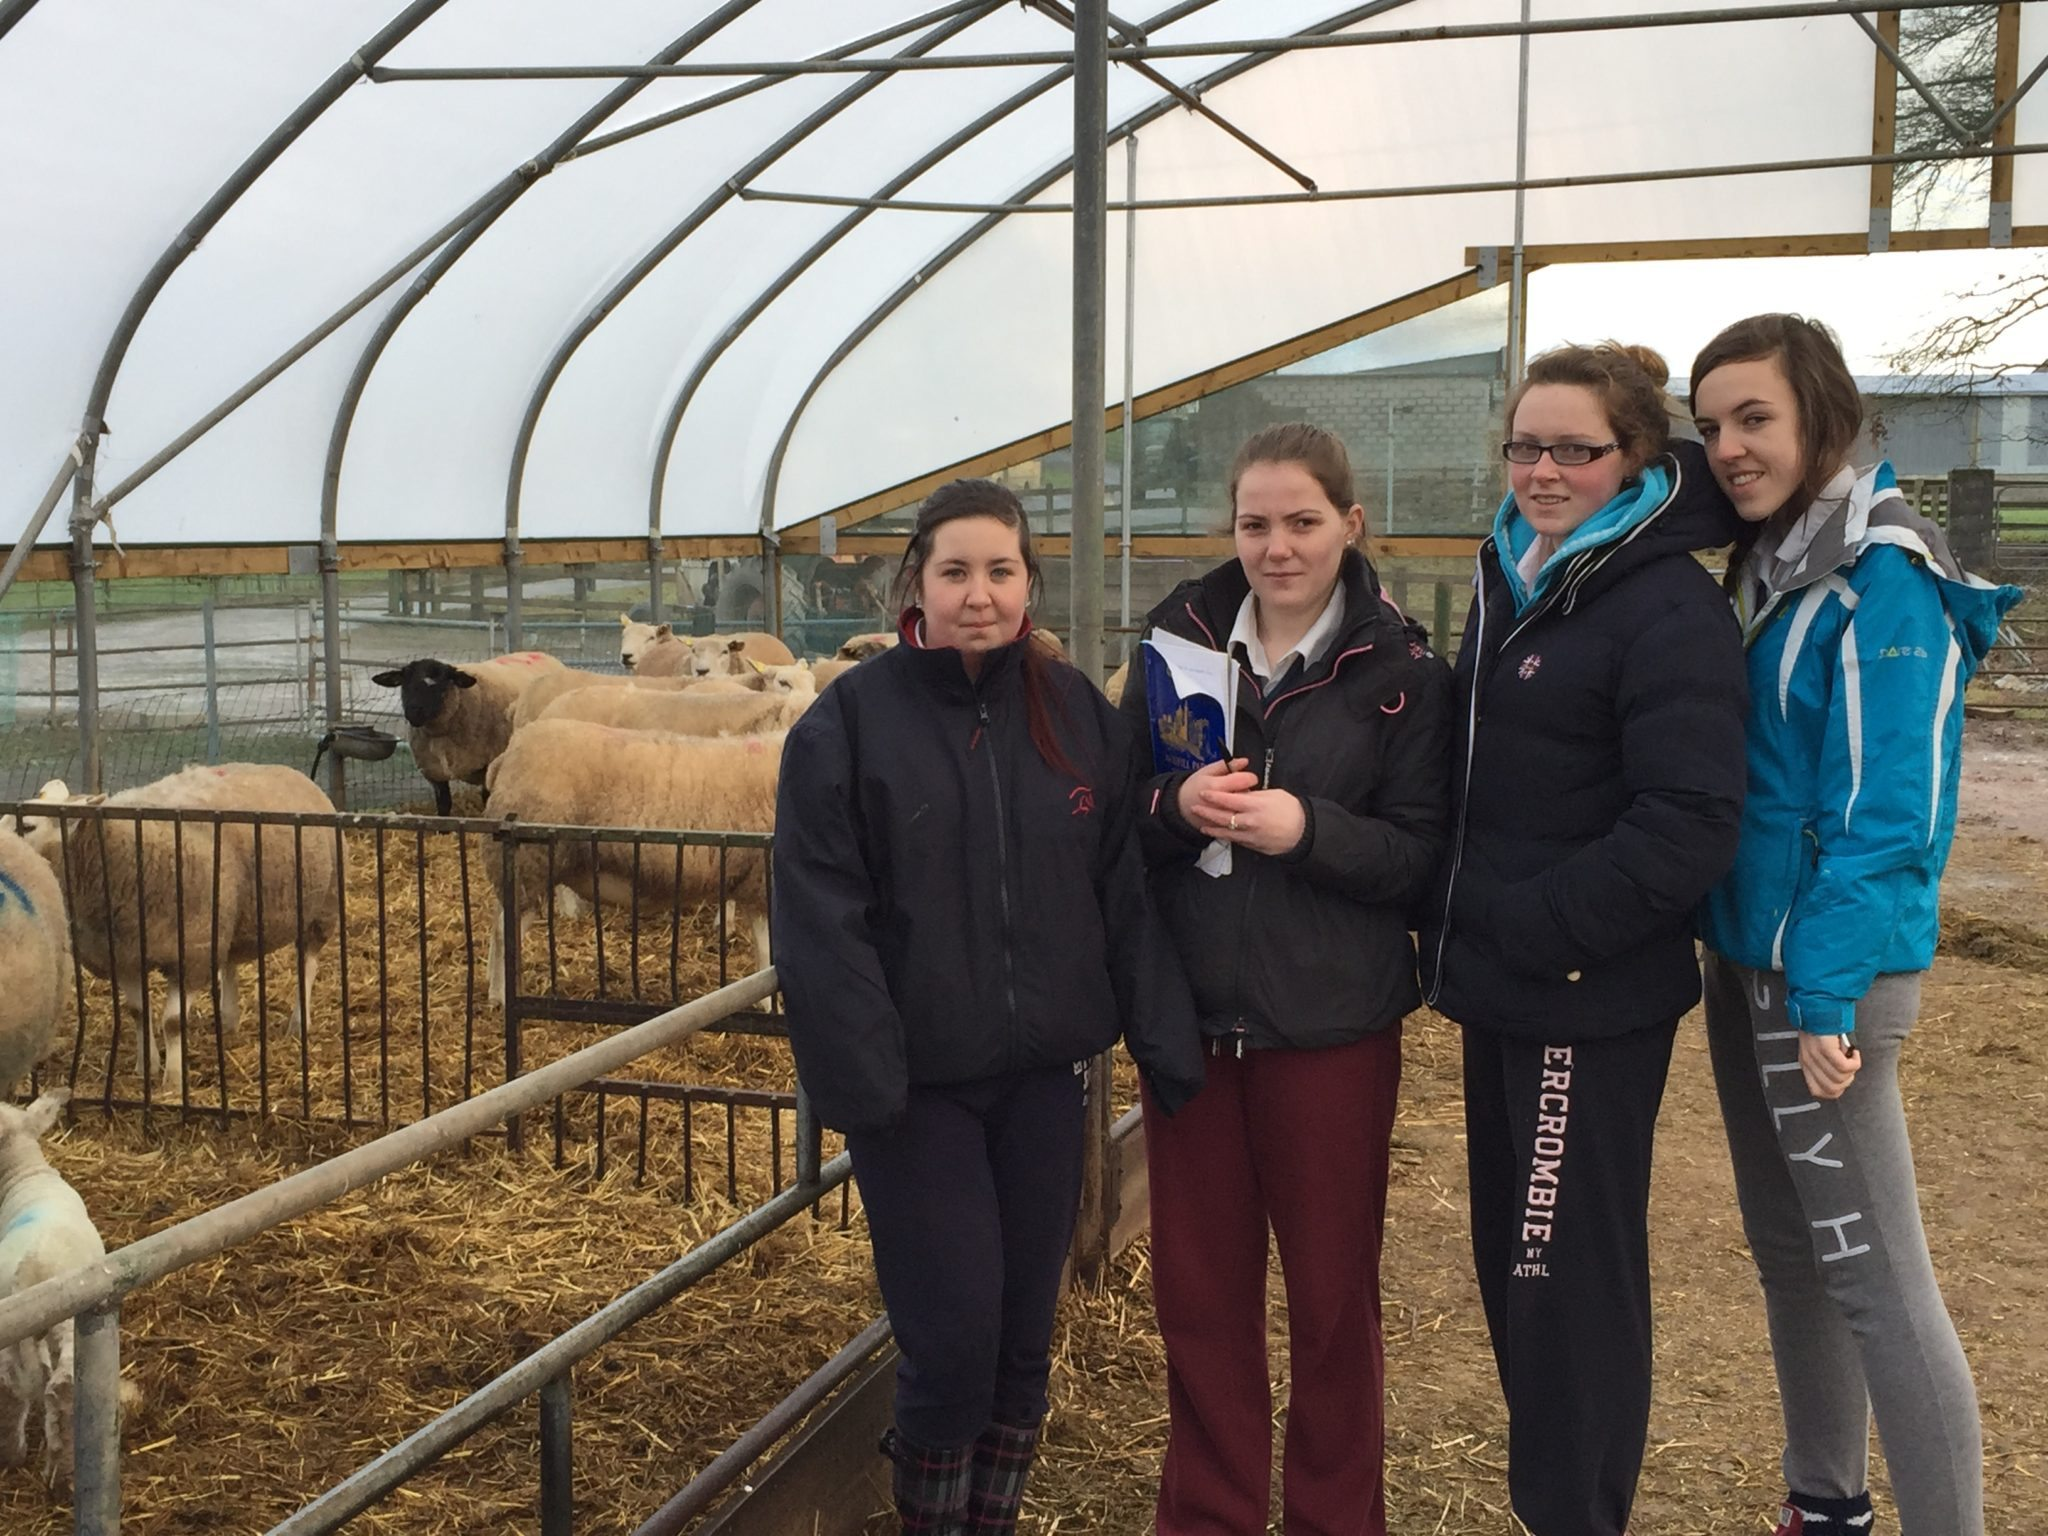 6th Year Desmond College students Claire Scanlon, Siobhan Moloney, Claire Collum and Shauna Hough study the Sheep Farm at Pallaskenry Agricultural College.